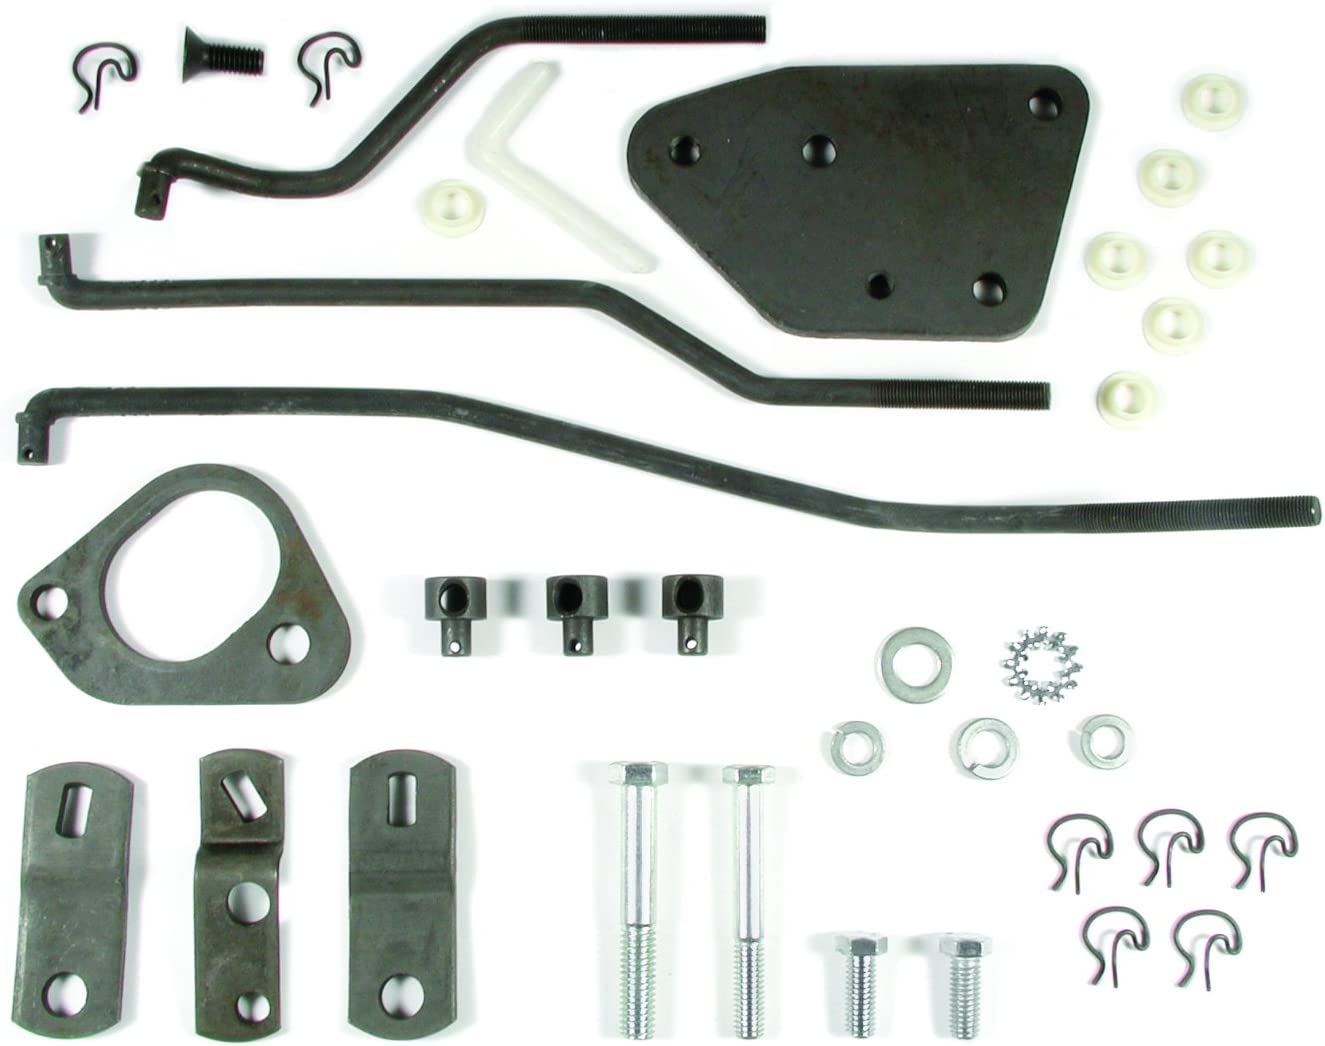 Hurst 3738609 Max 76% OFF Challenge the lowest price of Japan ☆ Gear Kit Installation Shift